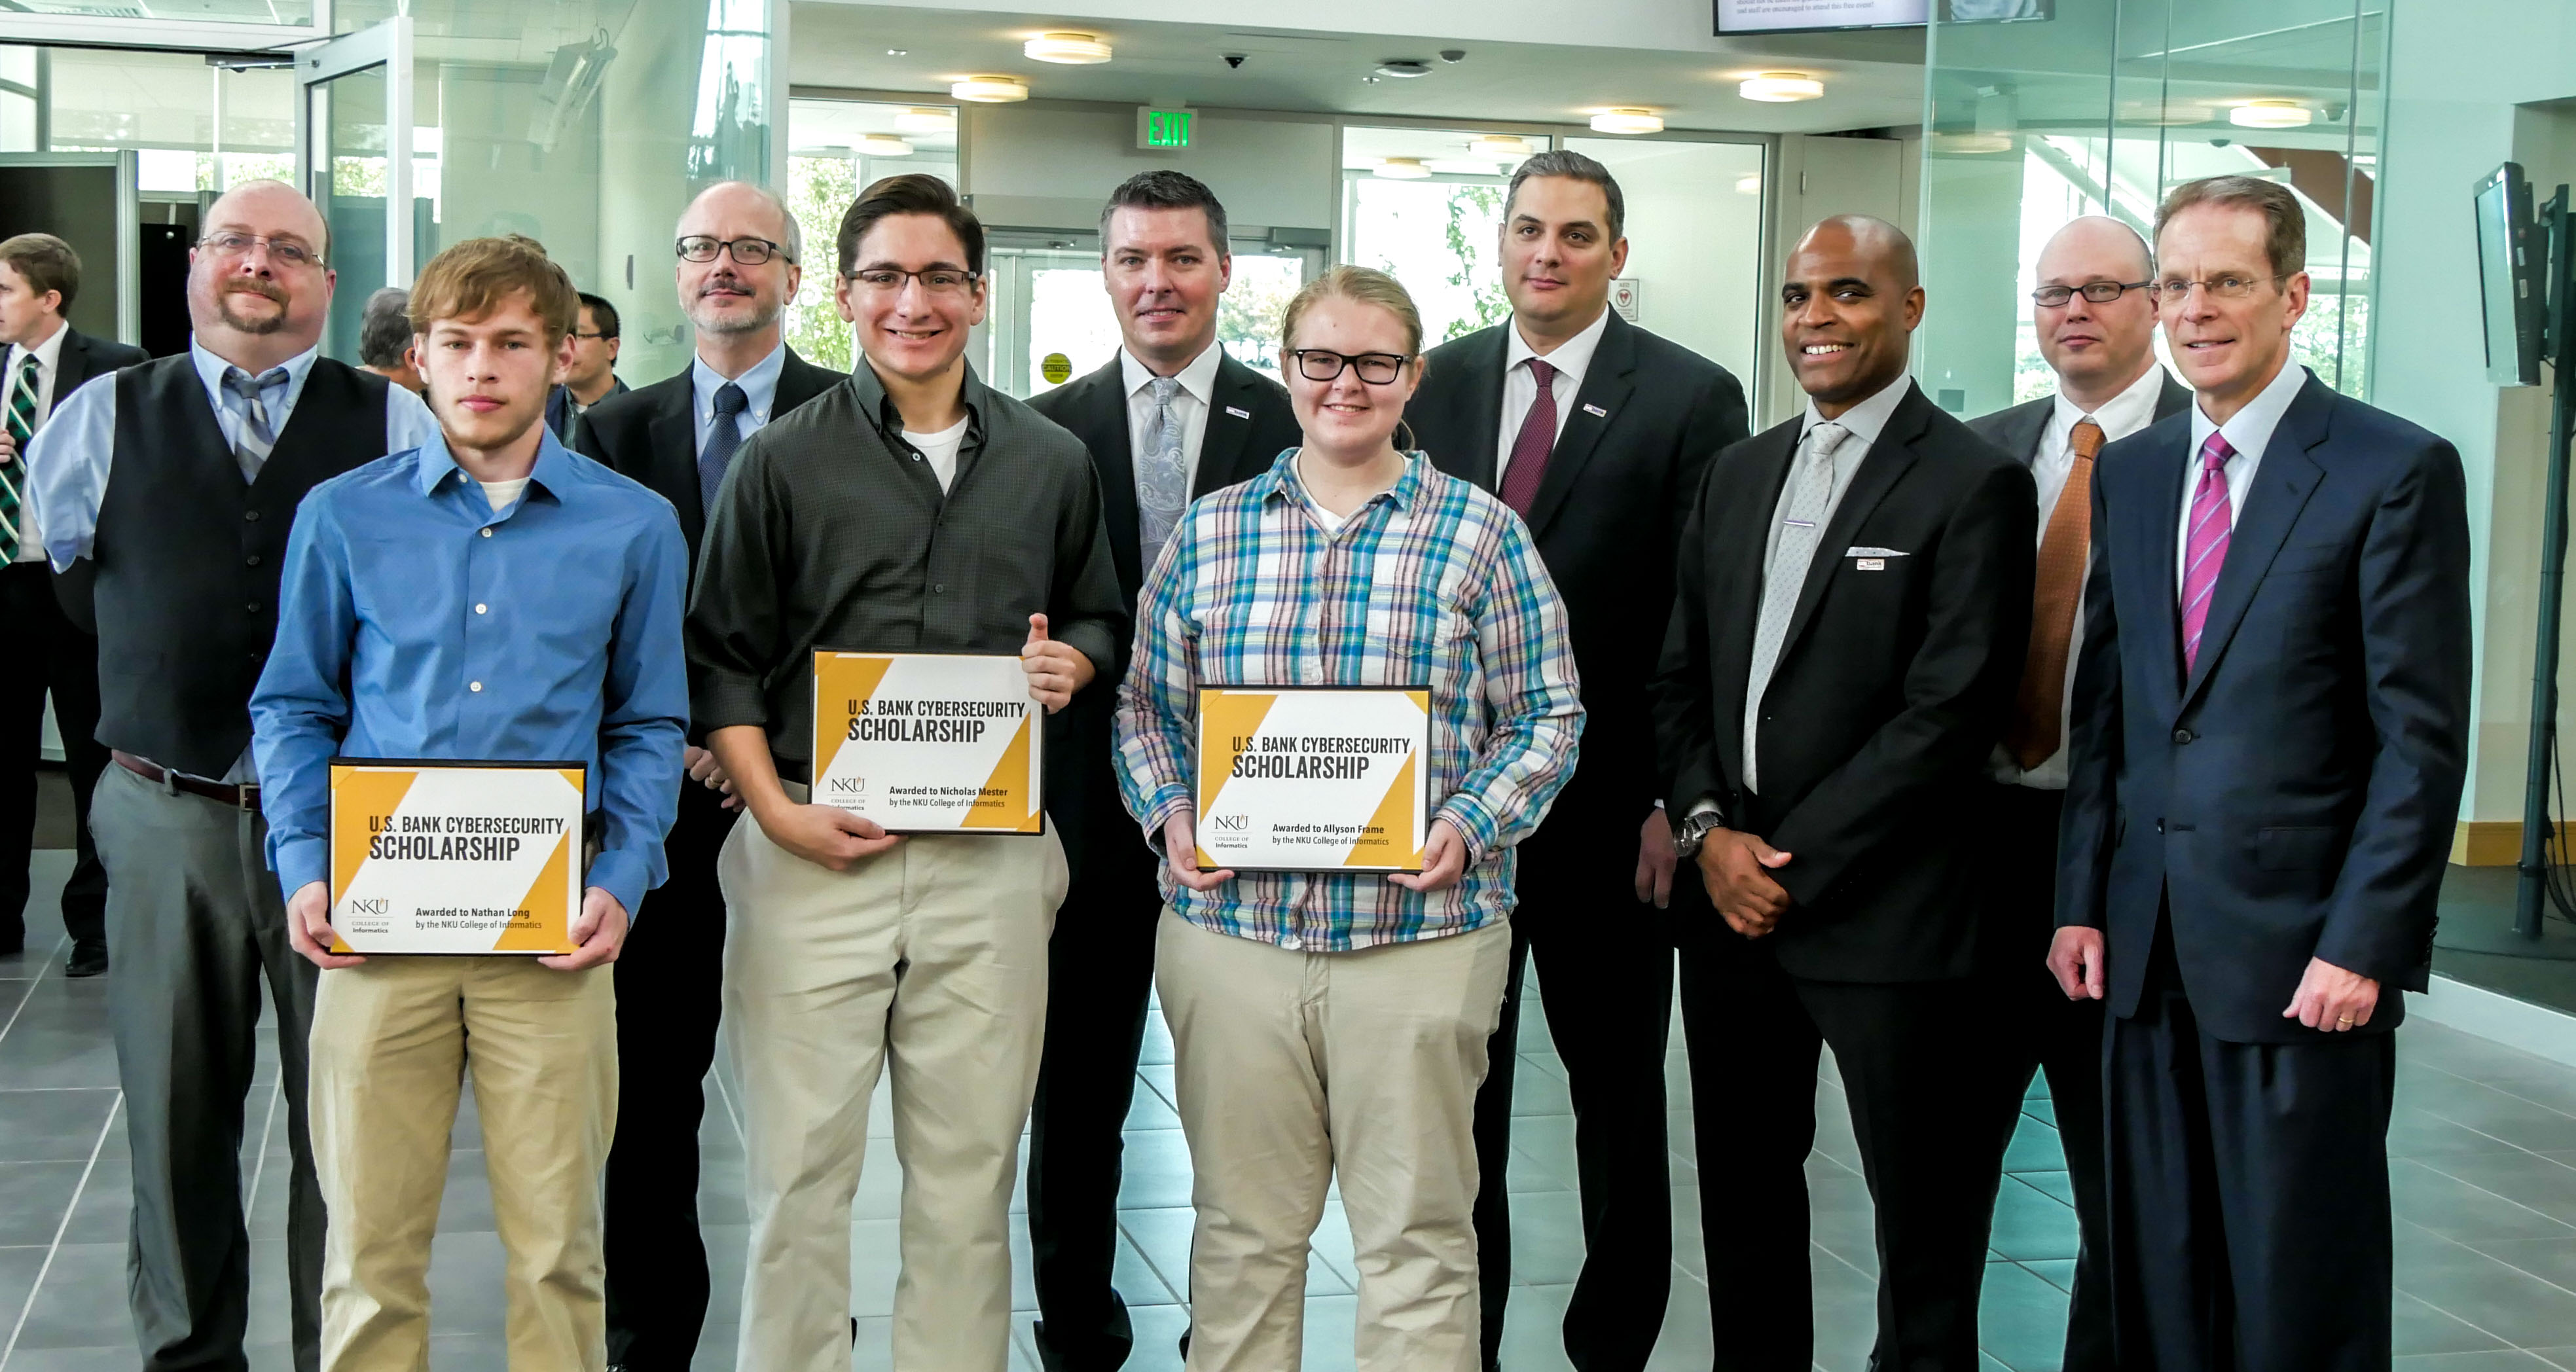 NKU+students+Nathanael+Long+and+Nick+Mester+and+Allyson+Frame+%28front%29+received+cybersecurity+scholarships+as+part+of+a+partnership+between+US+Bank+and+NKU.